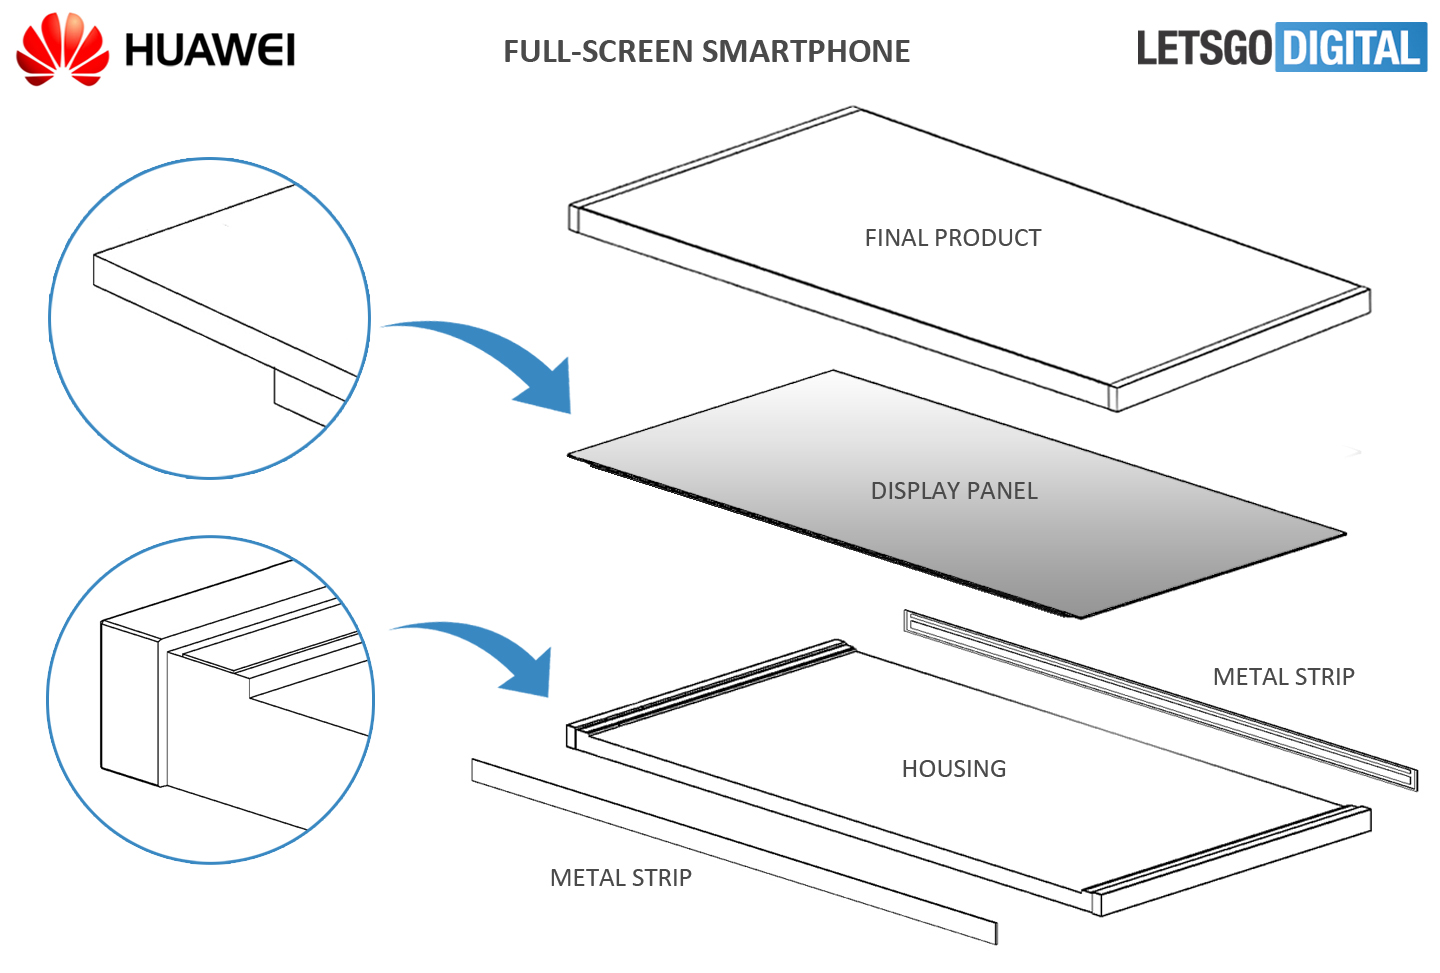 Huawei full-screen smartphone